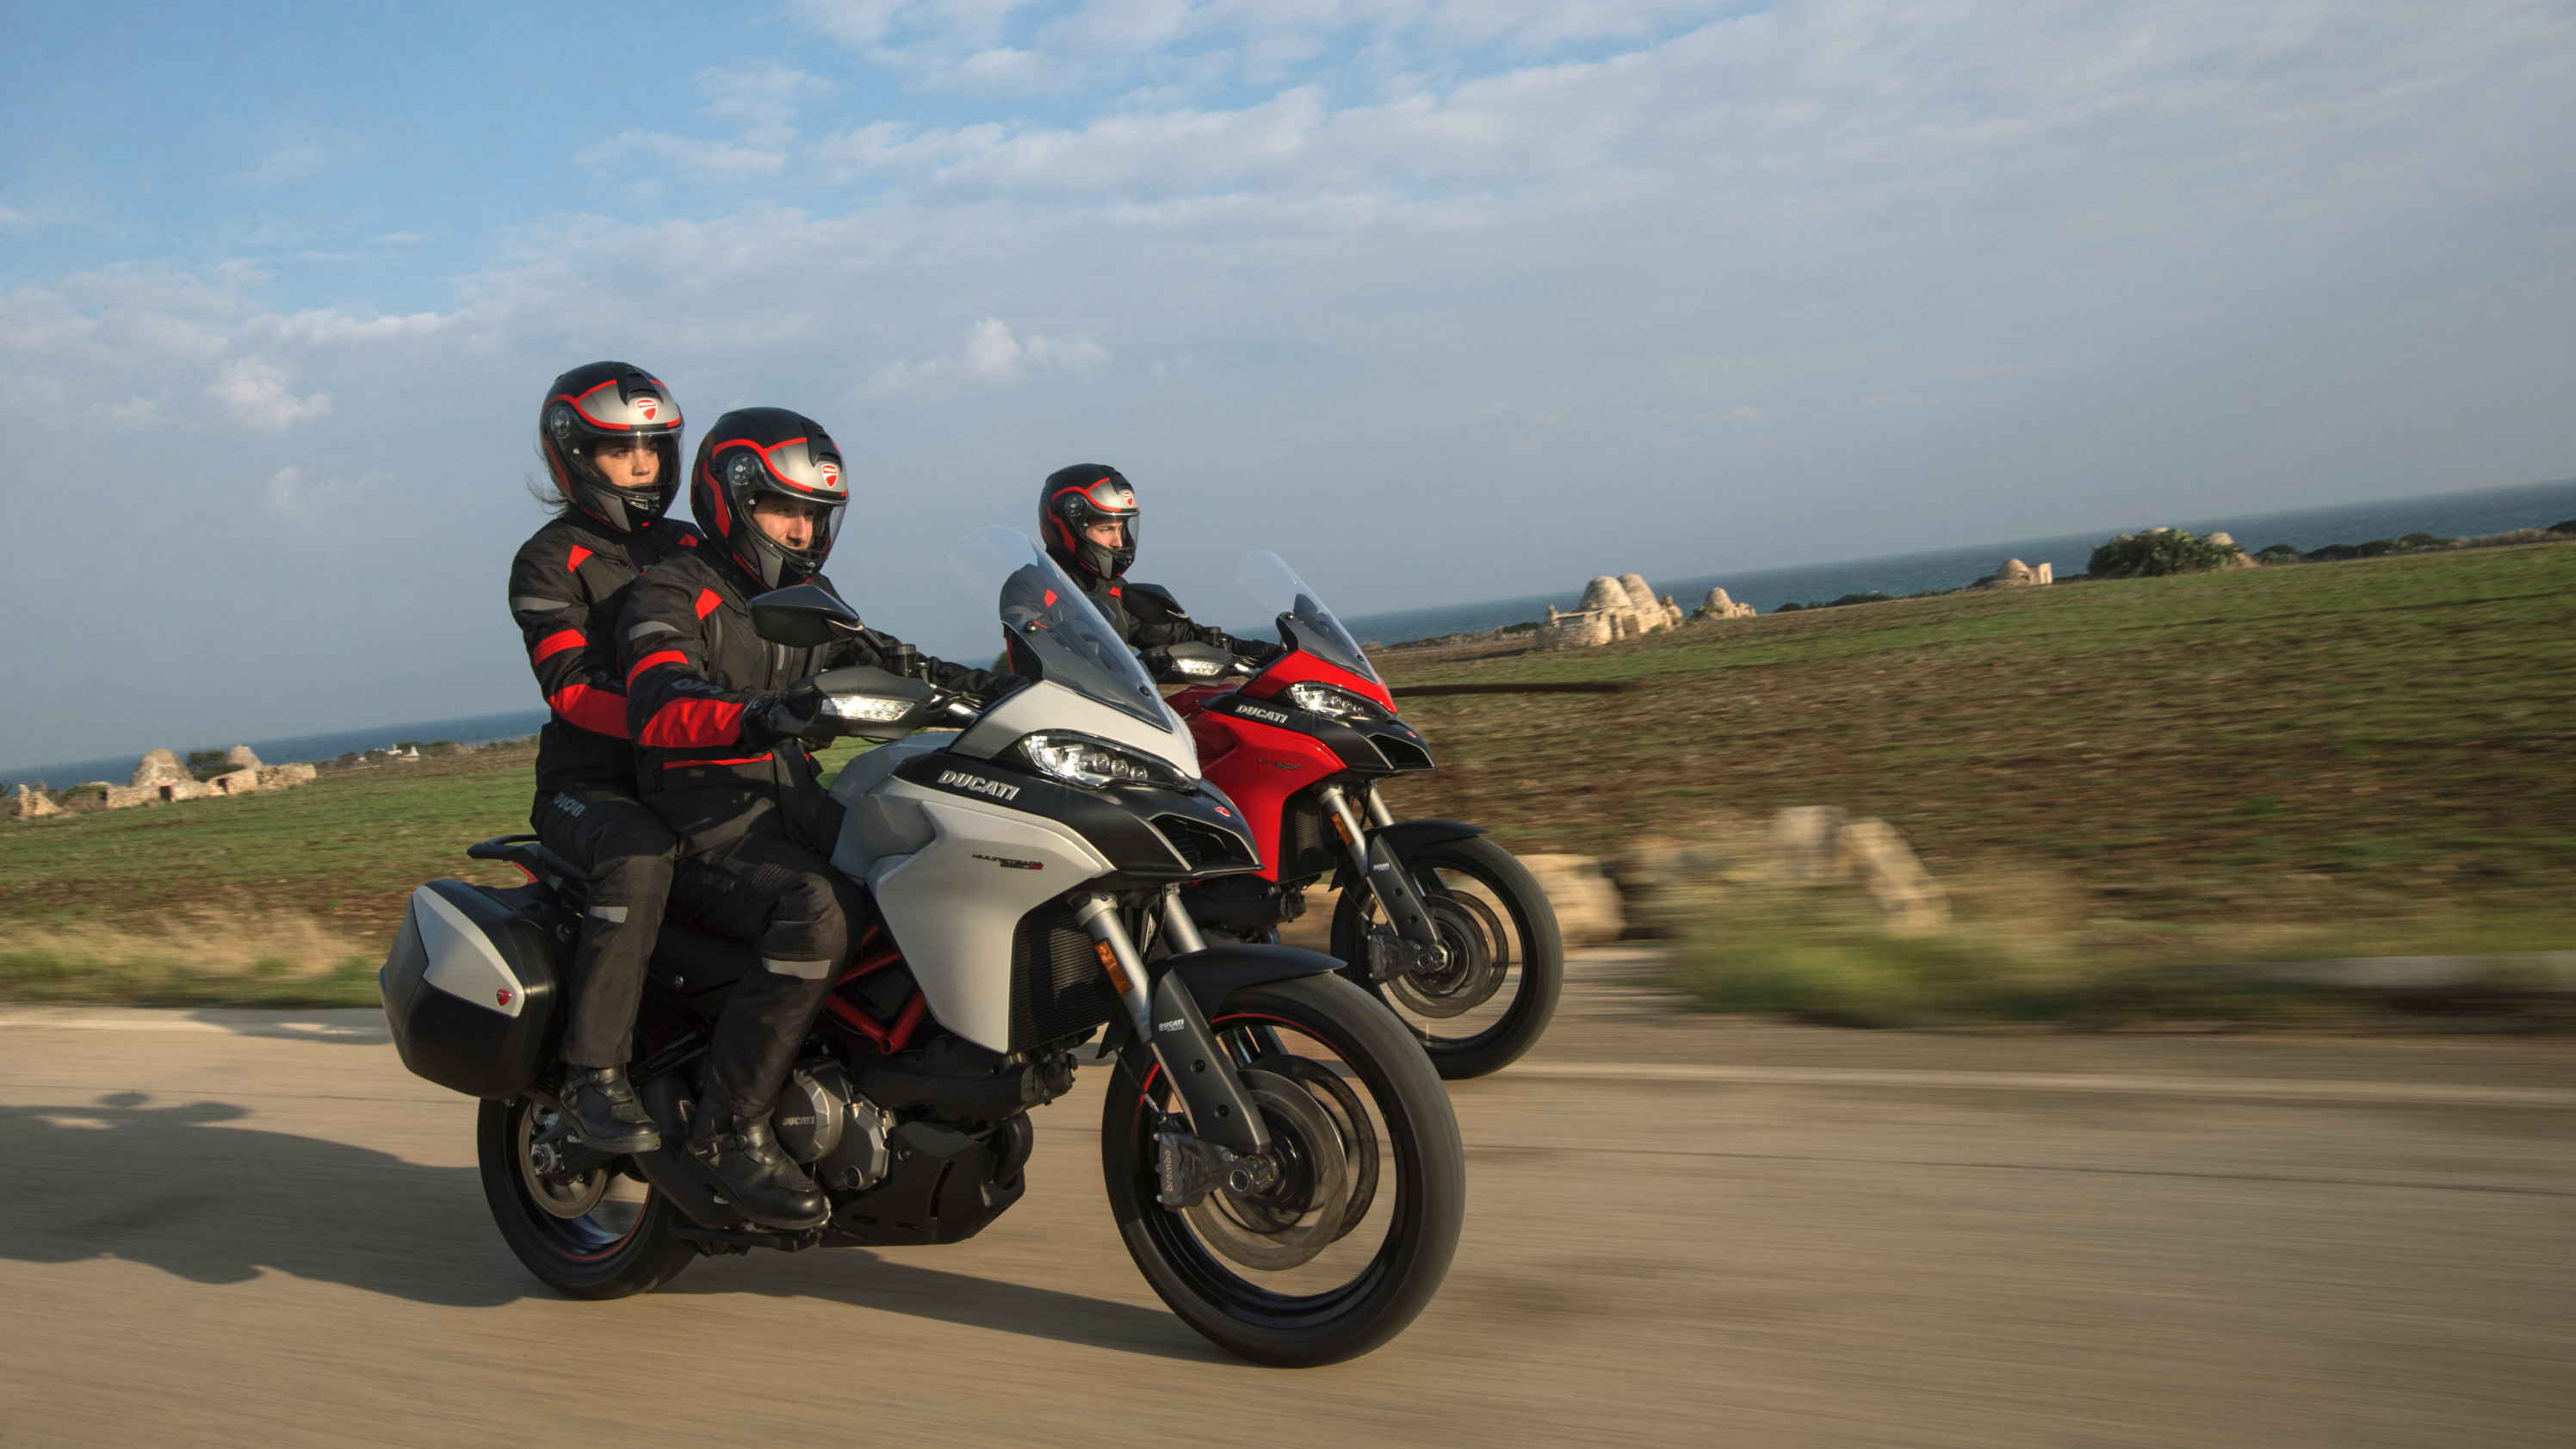 Tremendous 2019 2020 Ducati Multistrada 950 950 S Top Speed Caraccident5 Cool Chair Designs And Ideas Caraccident5Info